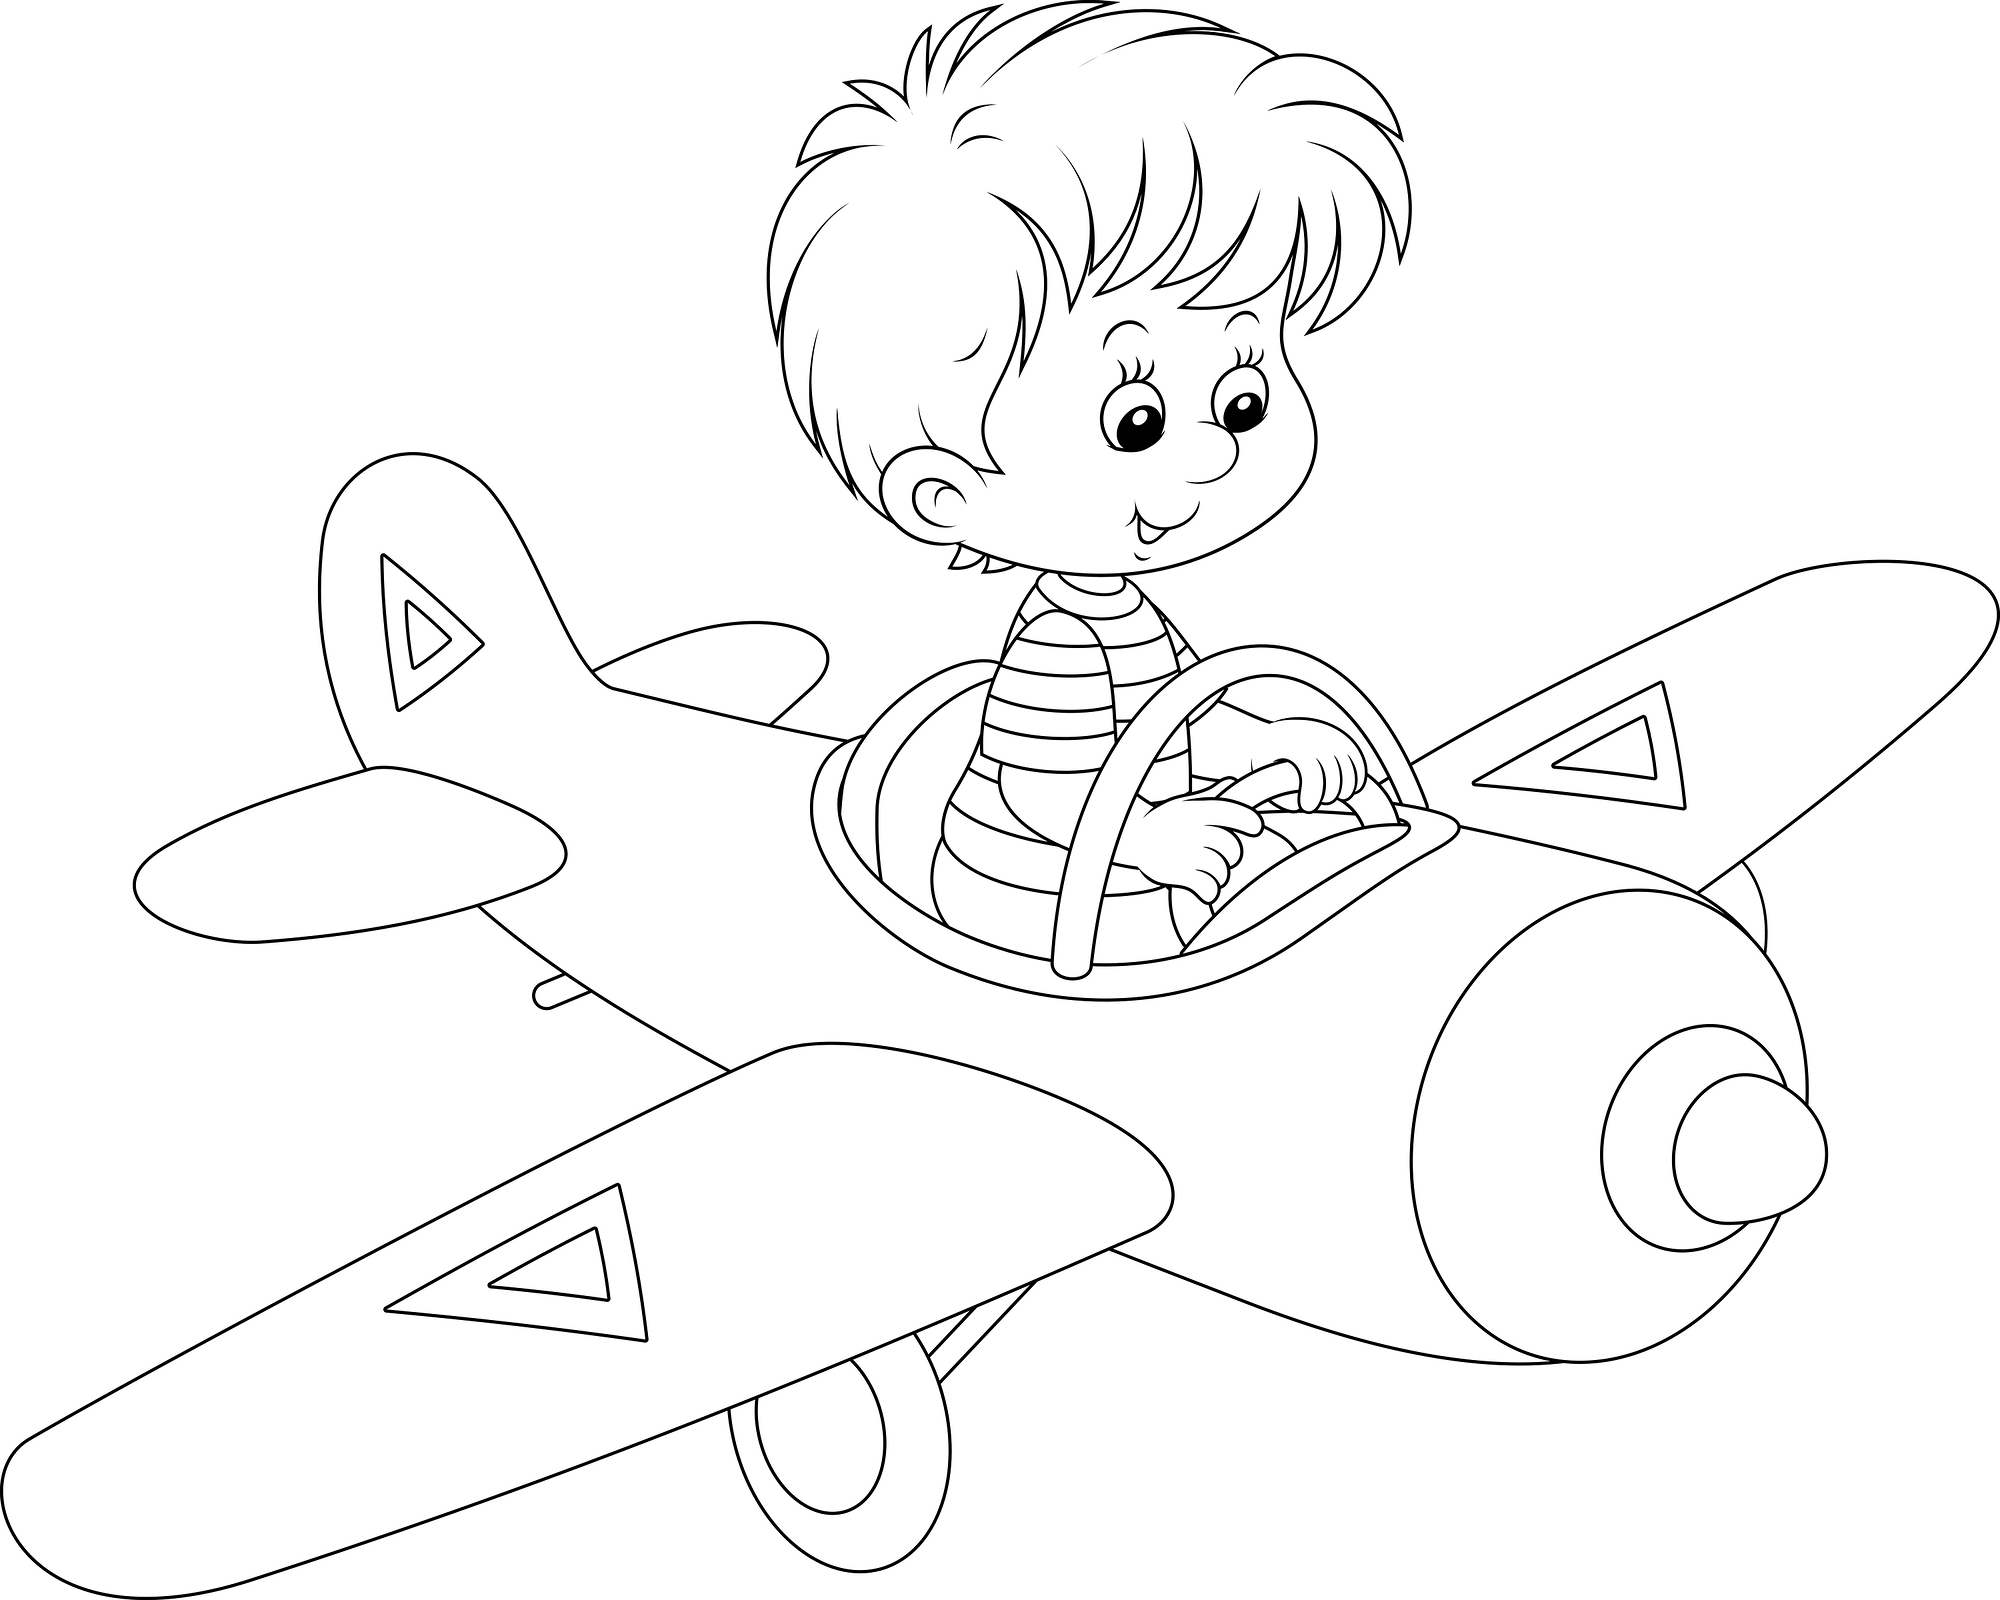 pilot coloring pages - photo#10